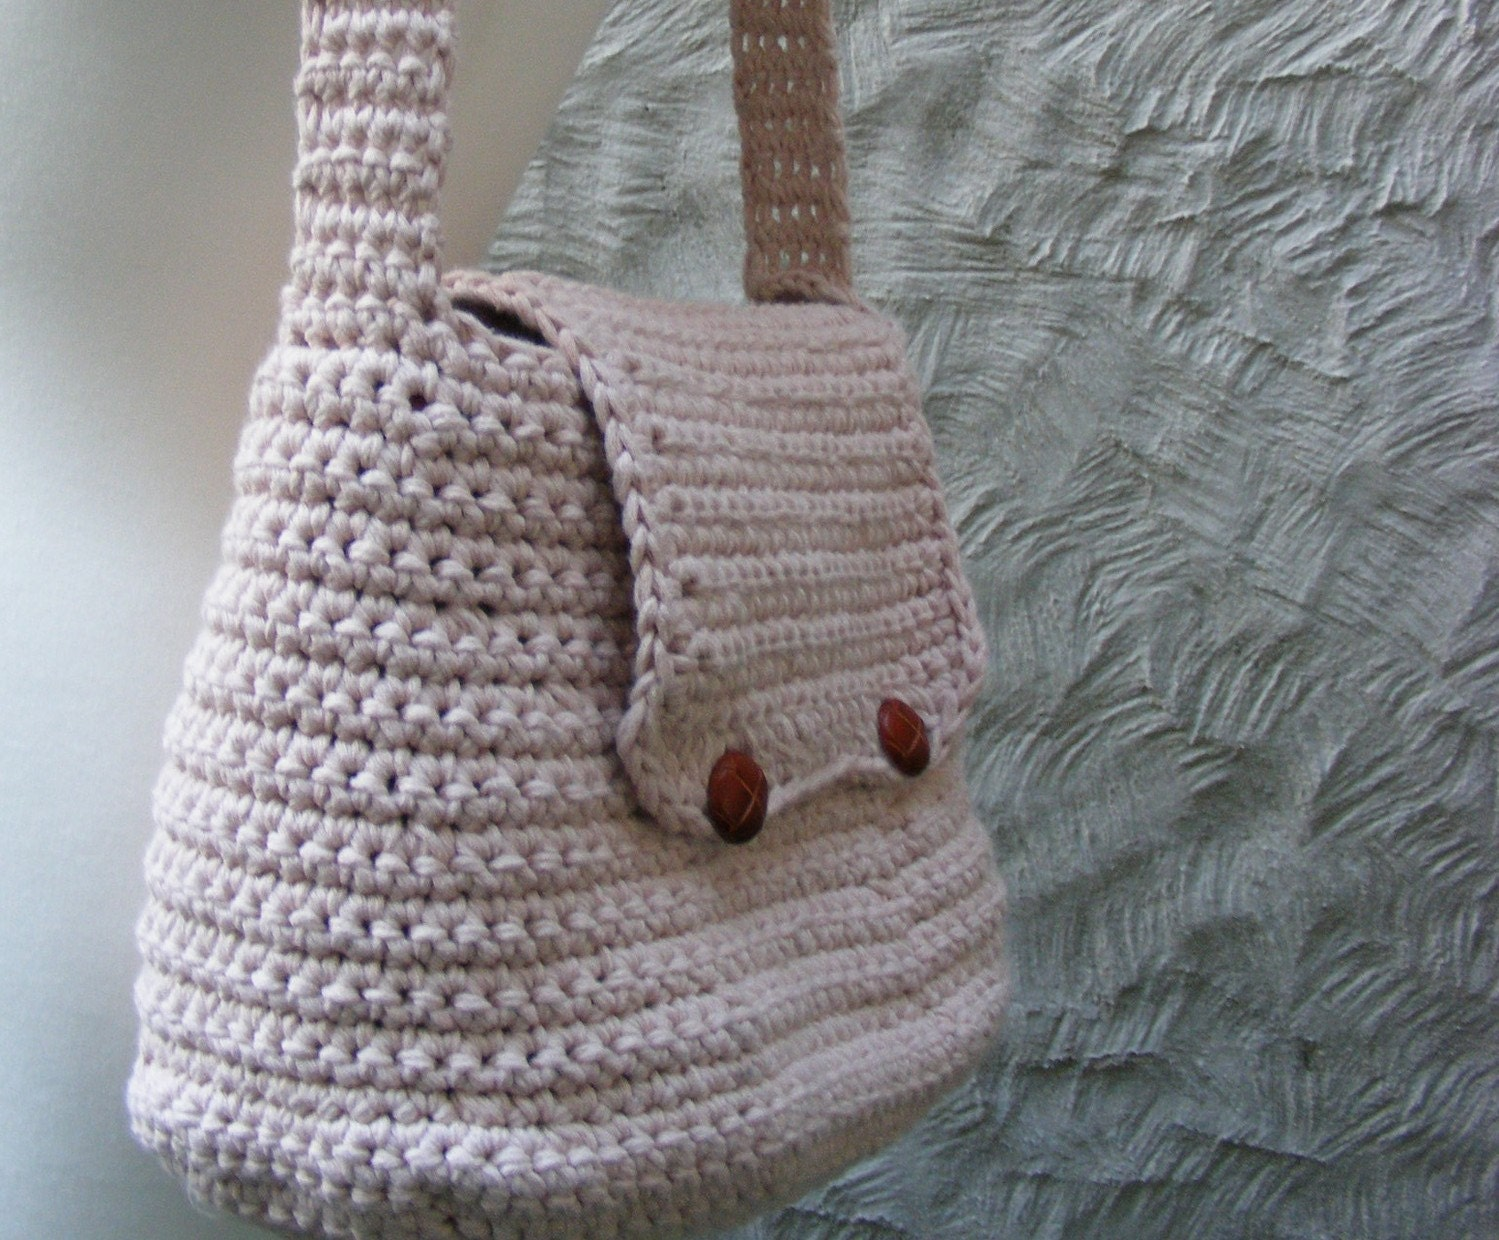 Crochet Handbags : Crochet Patterns For Beginners Bag Patterns Crochet Hobo Bag